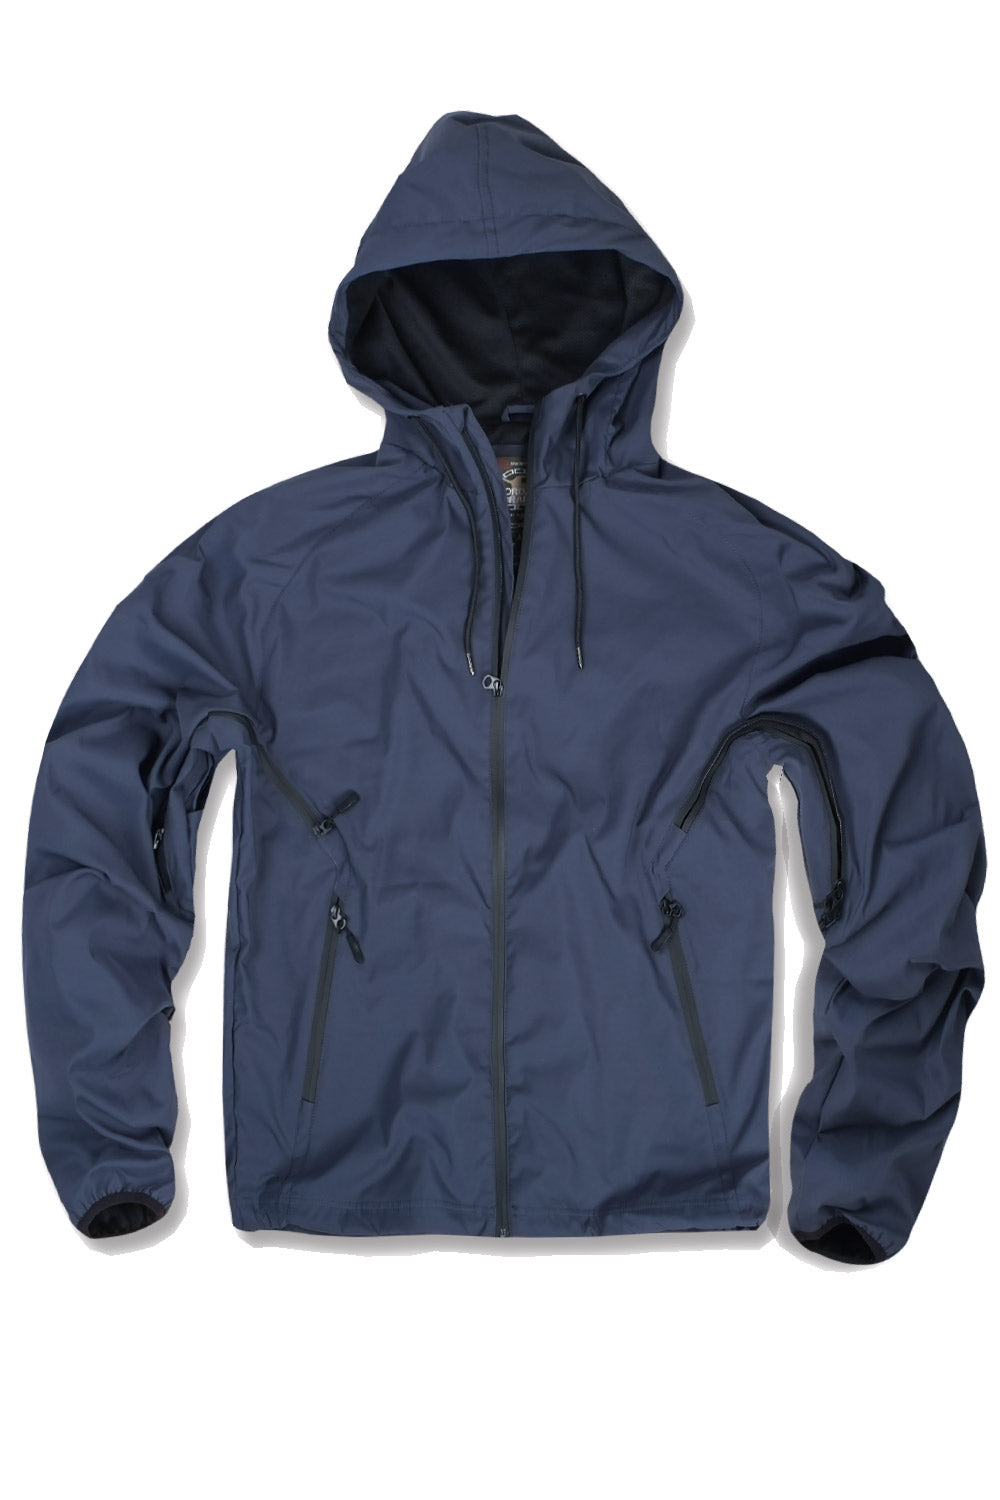 Jordan Craig - Sprinter Ventilated Windbreaker (Navy)